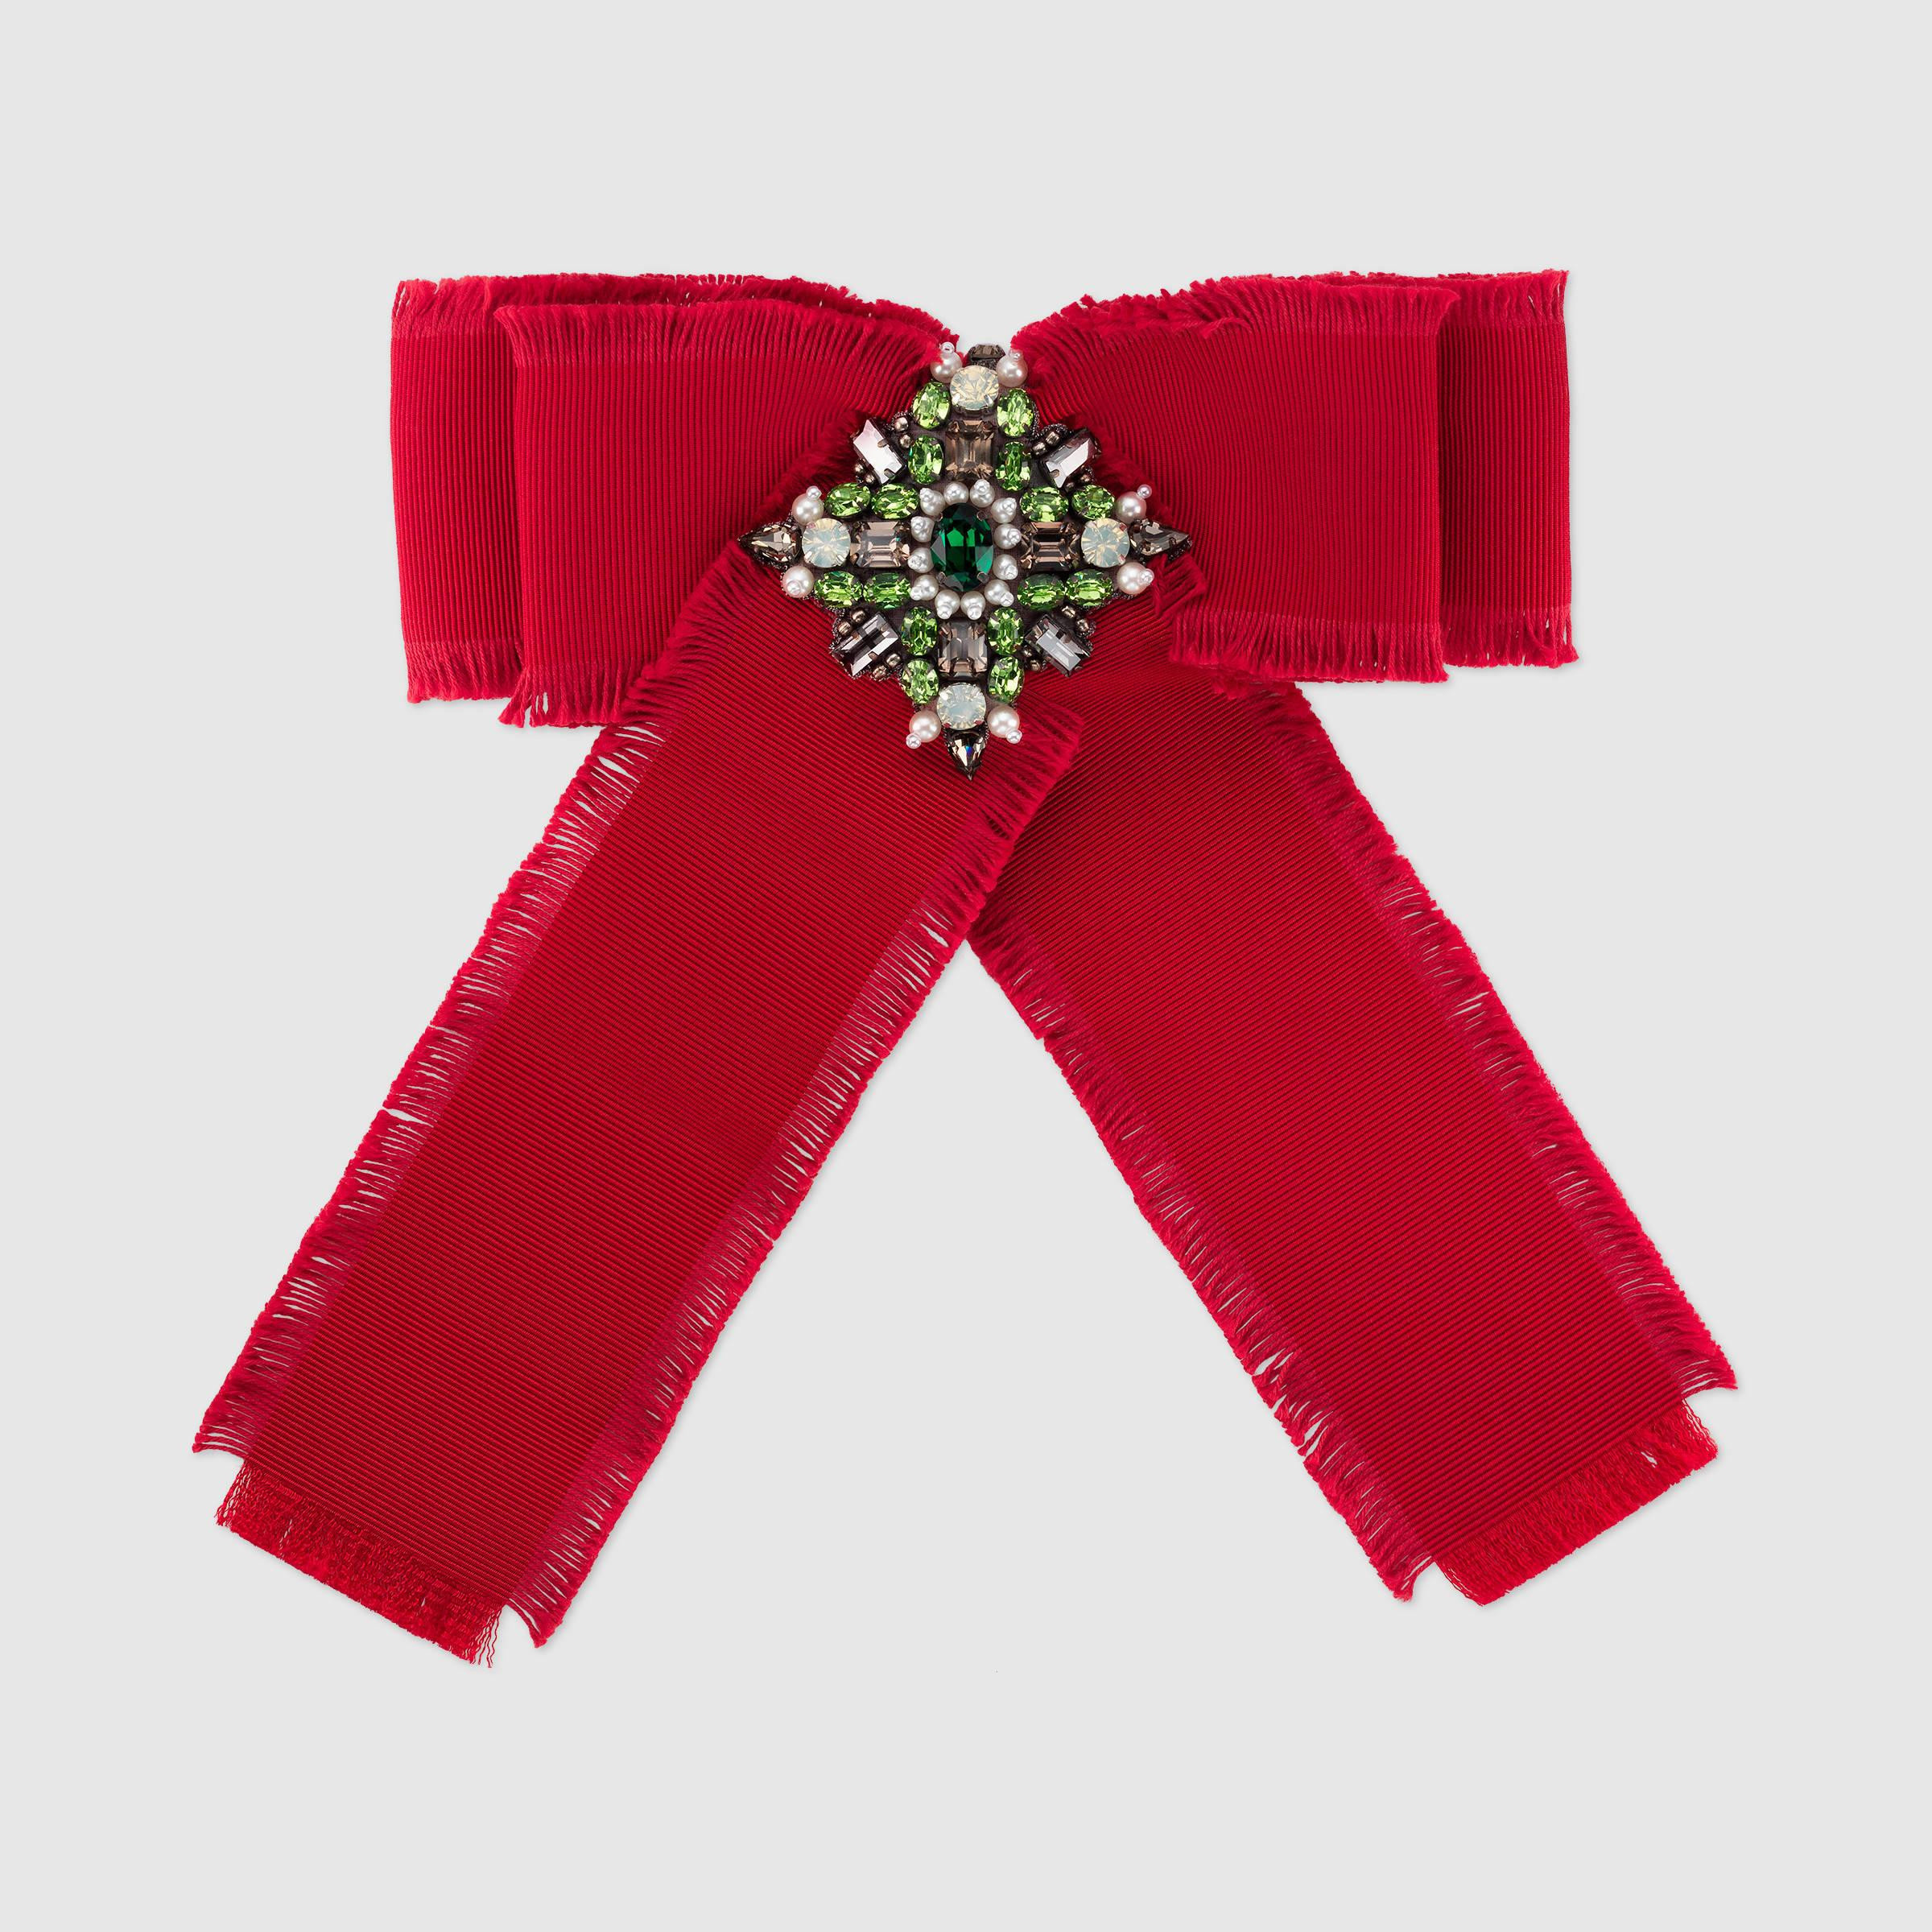 Gucci Brooches  Gucci Grosgrain Bow Brooch in Red